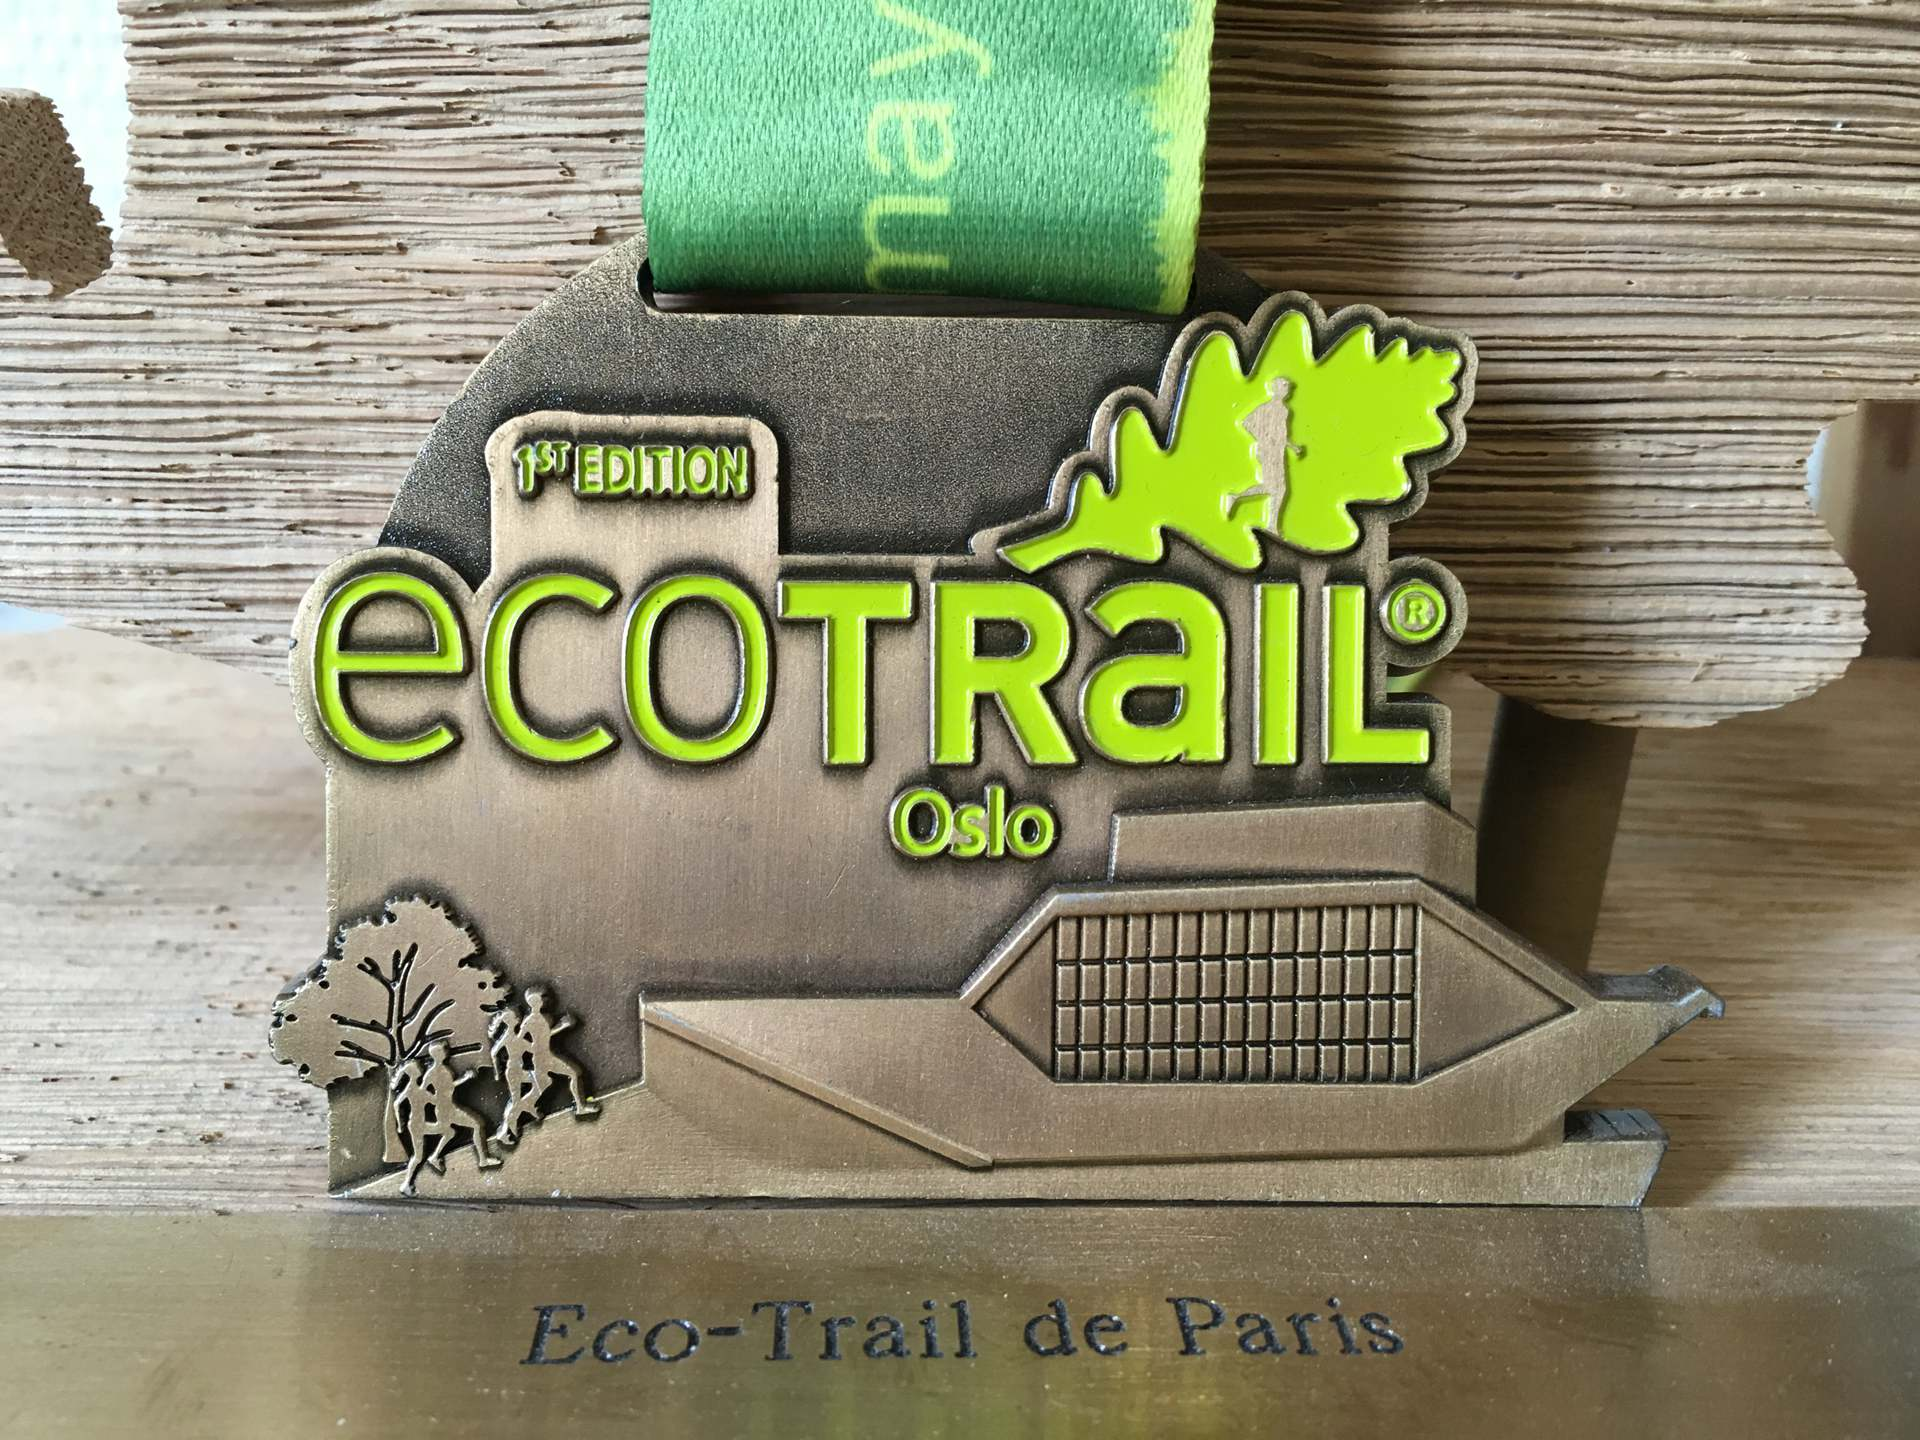 Ecotrail d'Oslo